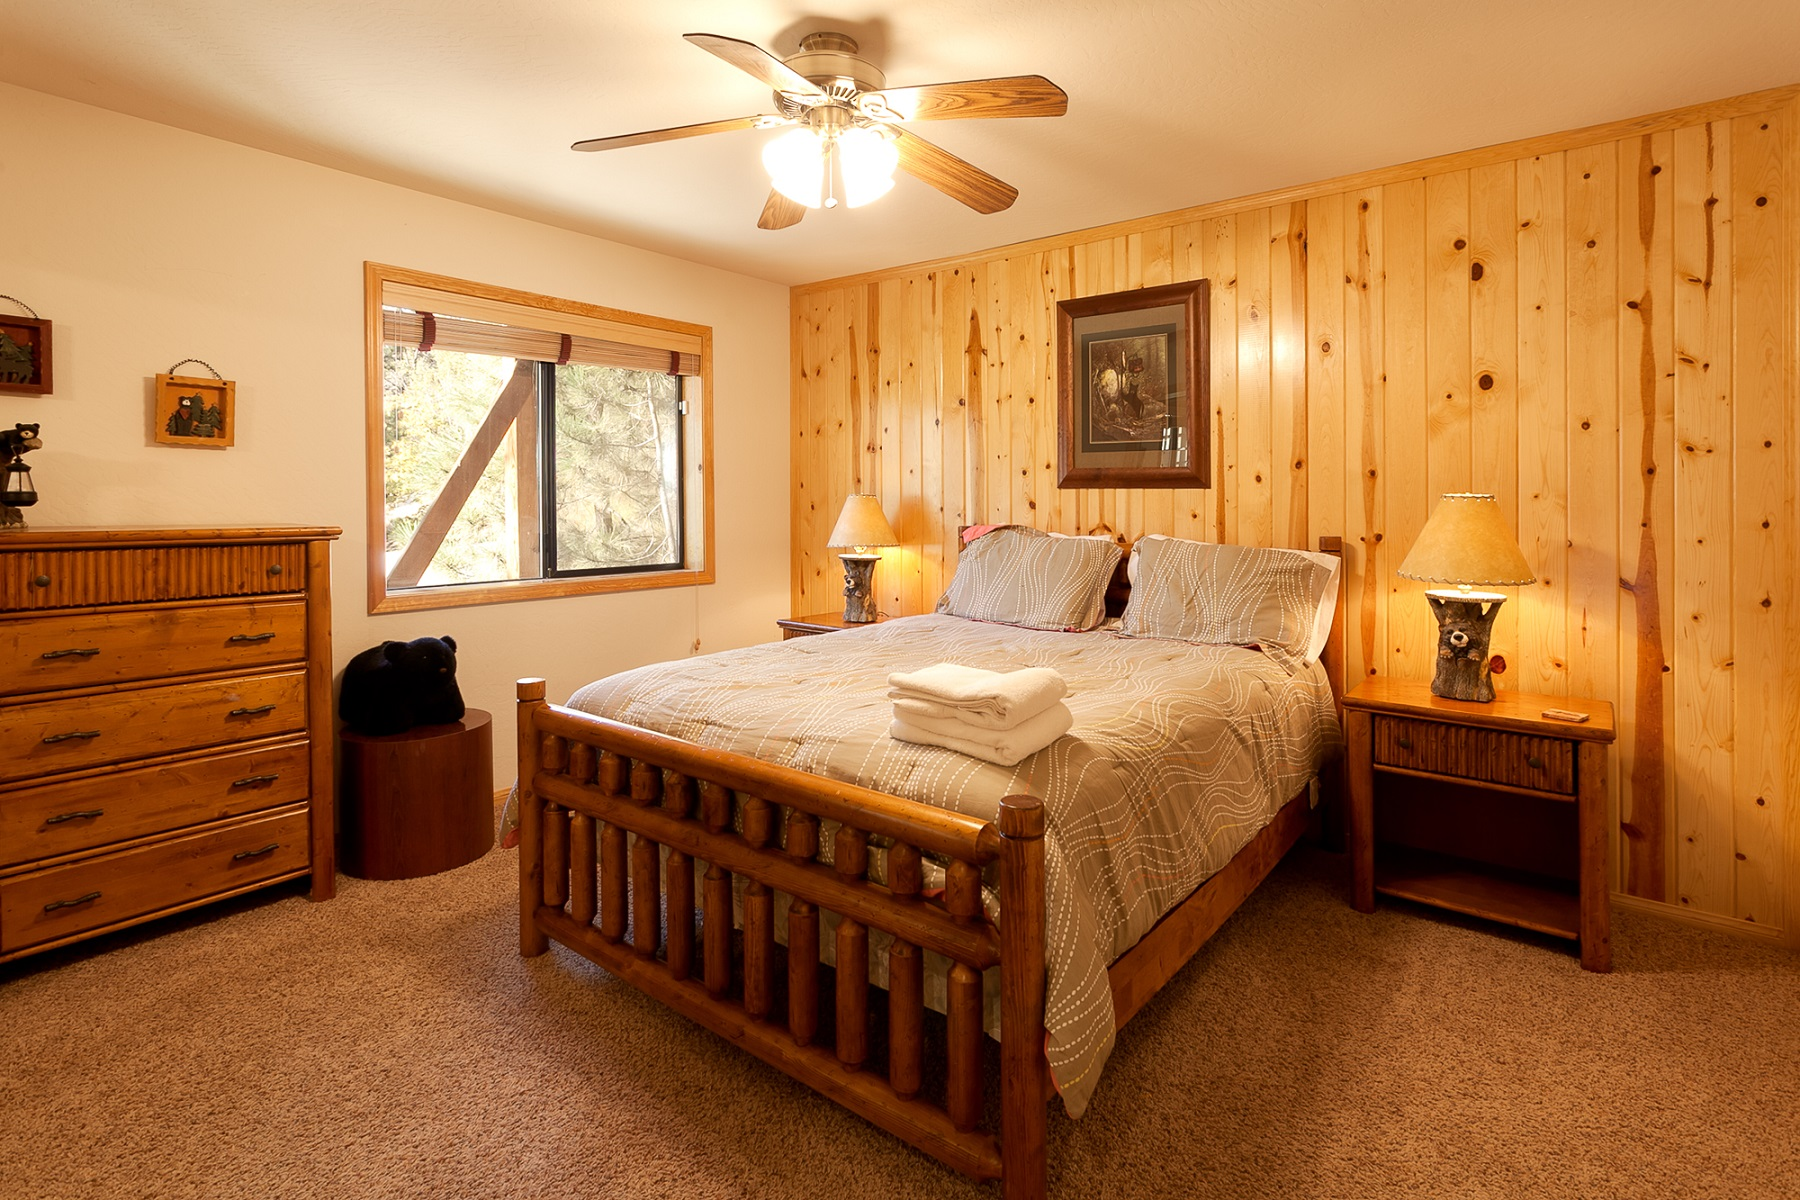 1BF653A9-155D-0010-07BC5805FB1F03DB-743 Butte-21-Guest Bedroom- resize 1.jpg